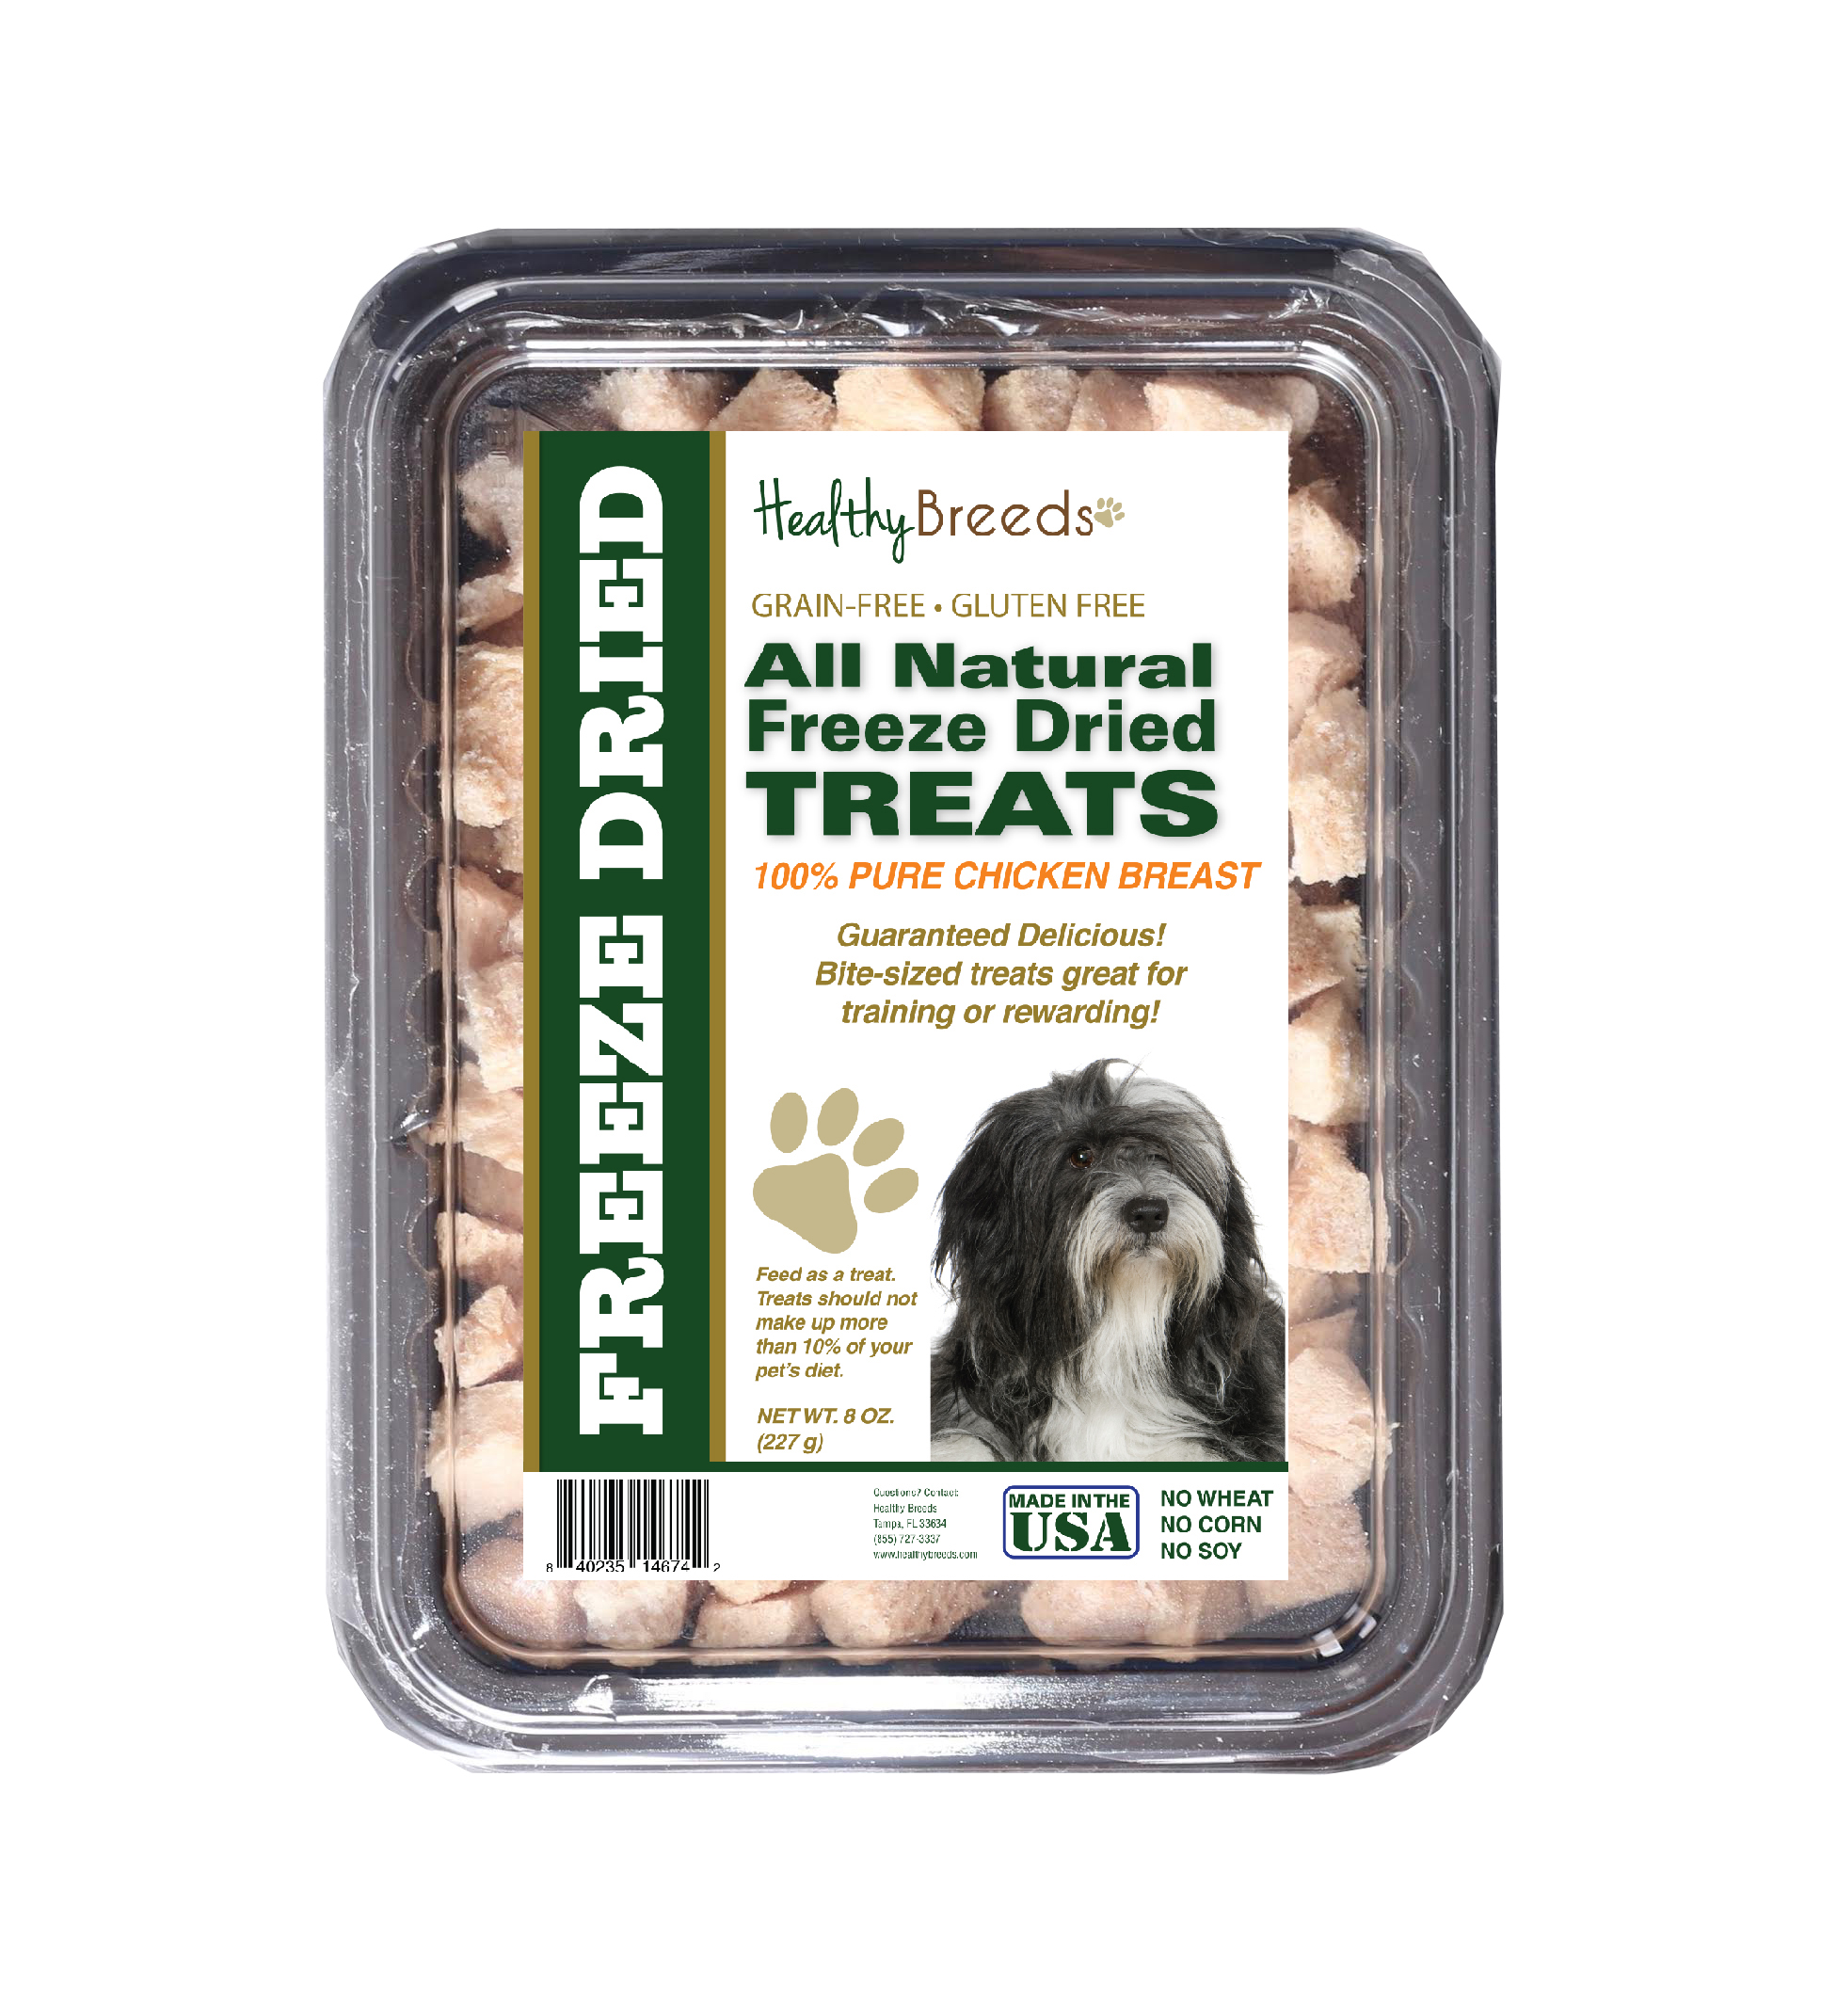 Healthy Breeds Lhasa Apso All Natural Freeze Dried Dog Treats Chicken Breast 8 oz